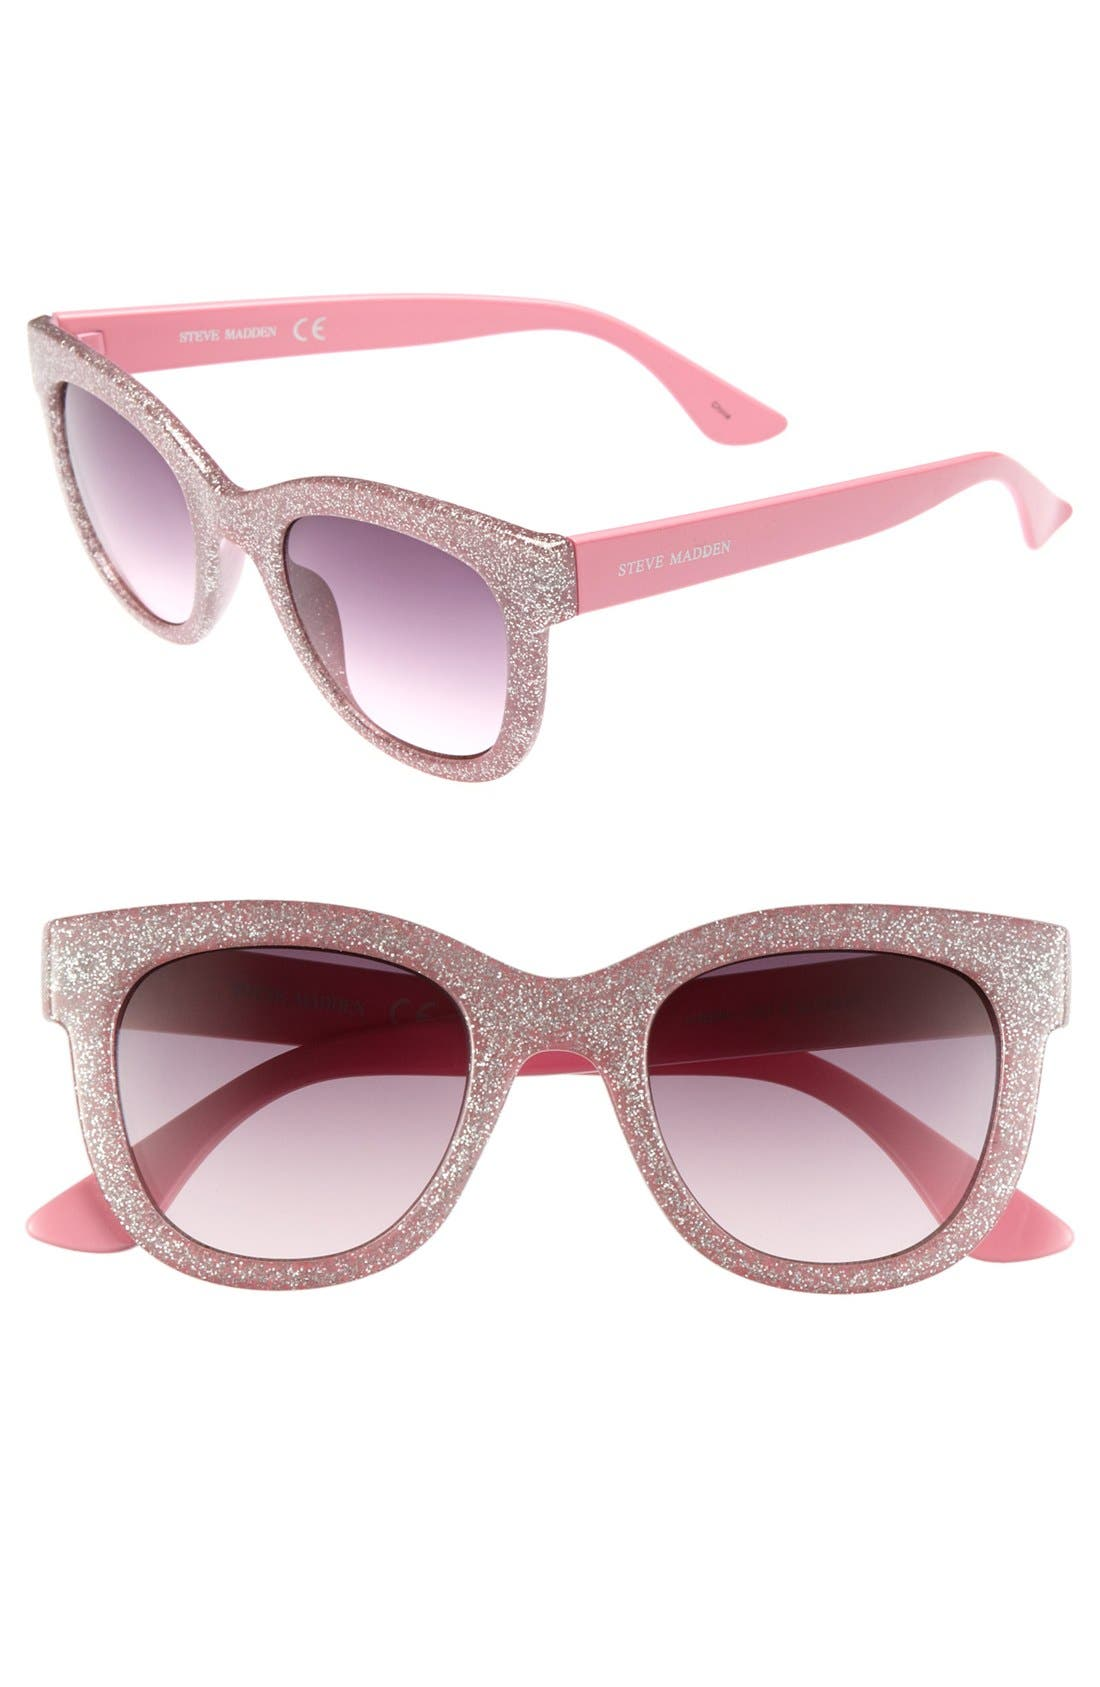 Alternate Image 1 Selected - Steve Madden Glitter Sunglasses